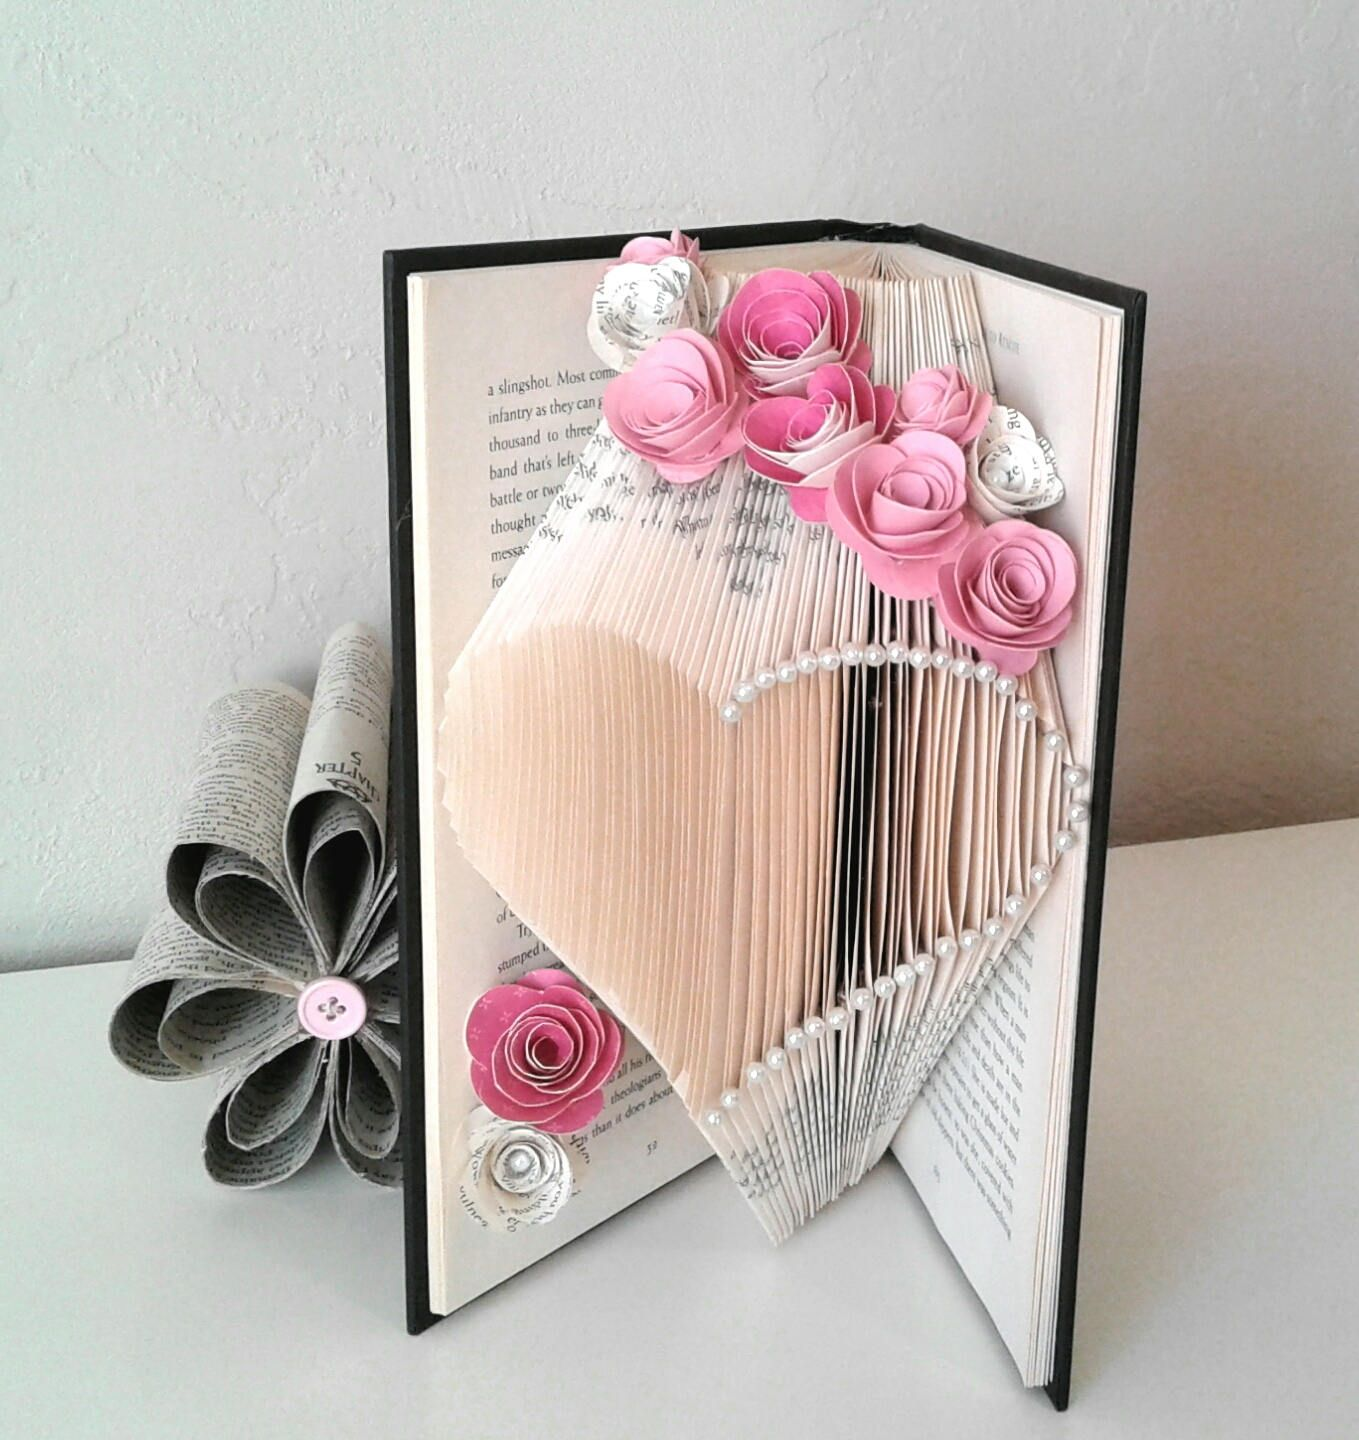 Book sculpturebook artmothers day giftheartbook page flowers book sculpturebook artmothers day giftheartbook page flowerspaper flowersbookfold heartbook page heartgift for herrecycled book art dhlflorist Image collections